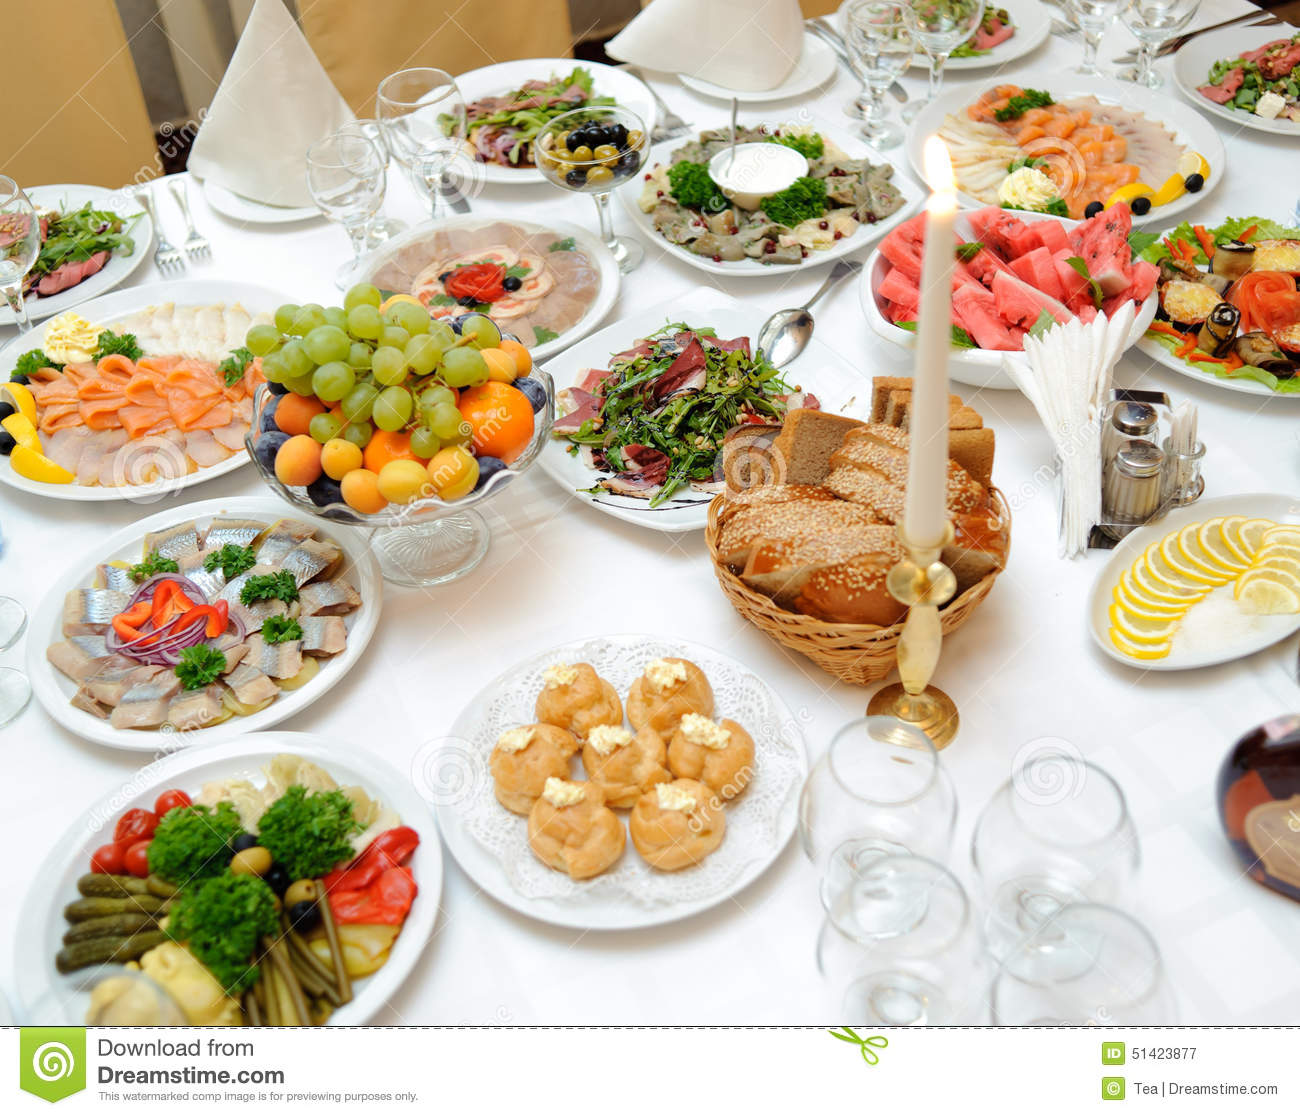 Table Snack Cuisine Table With Food In Restaurant Stock Image Image 51423877